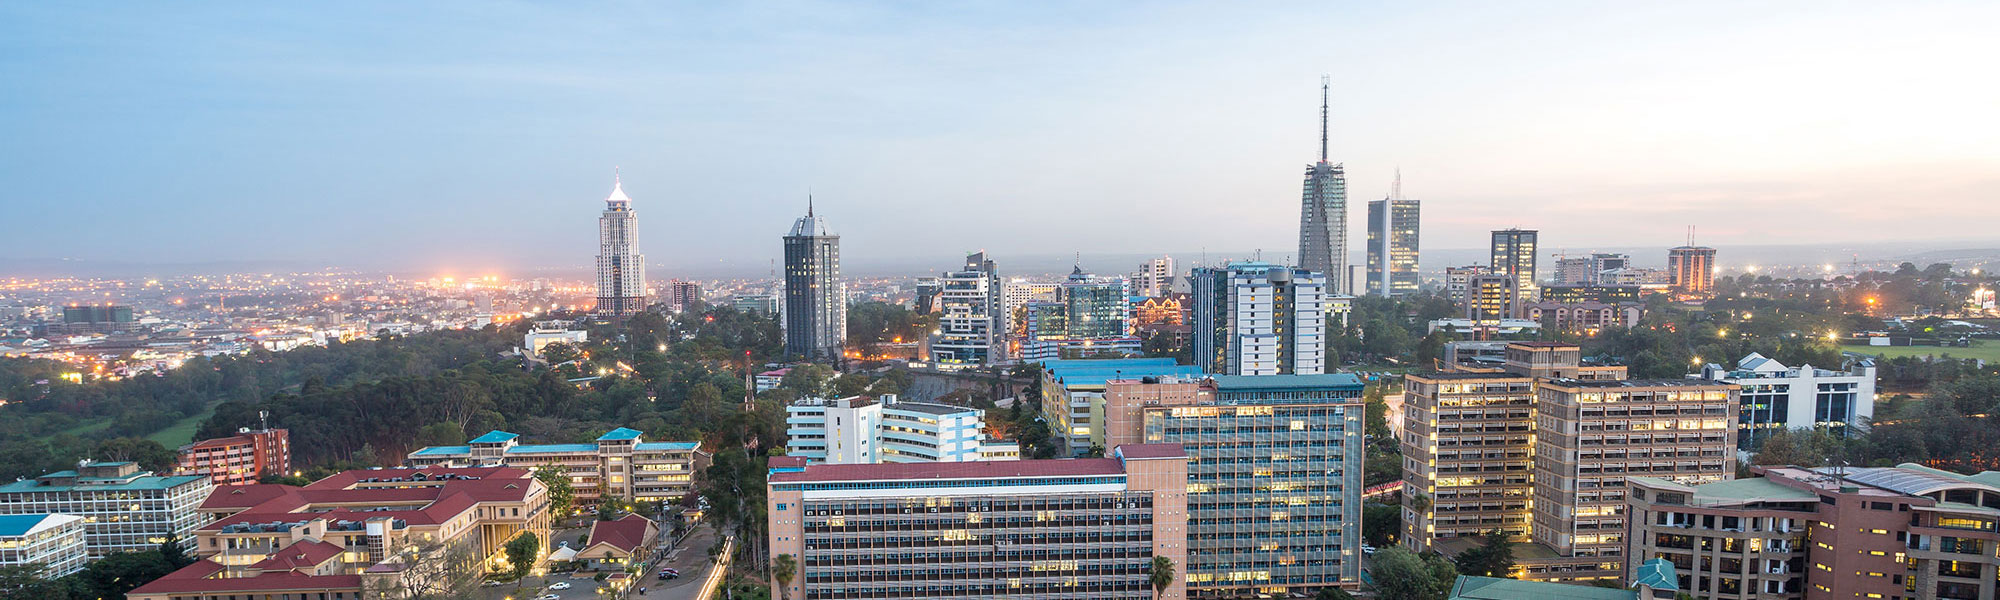 BRINGING PUBLIC-PRIVATE PARTNERSHIP TRAINING TO EAST AFRICA'S ENERGY LEADERS